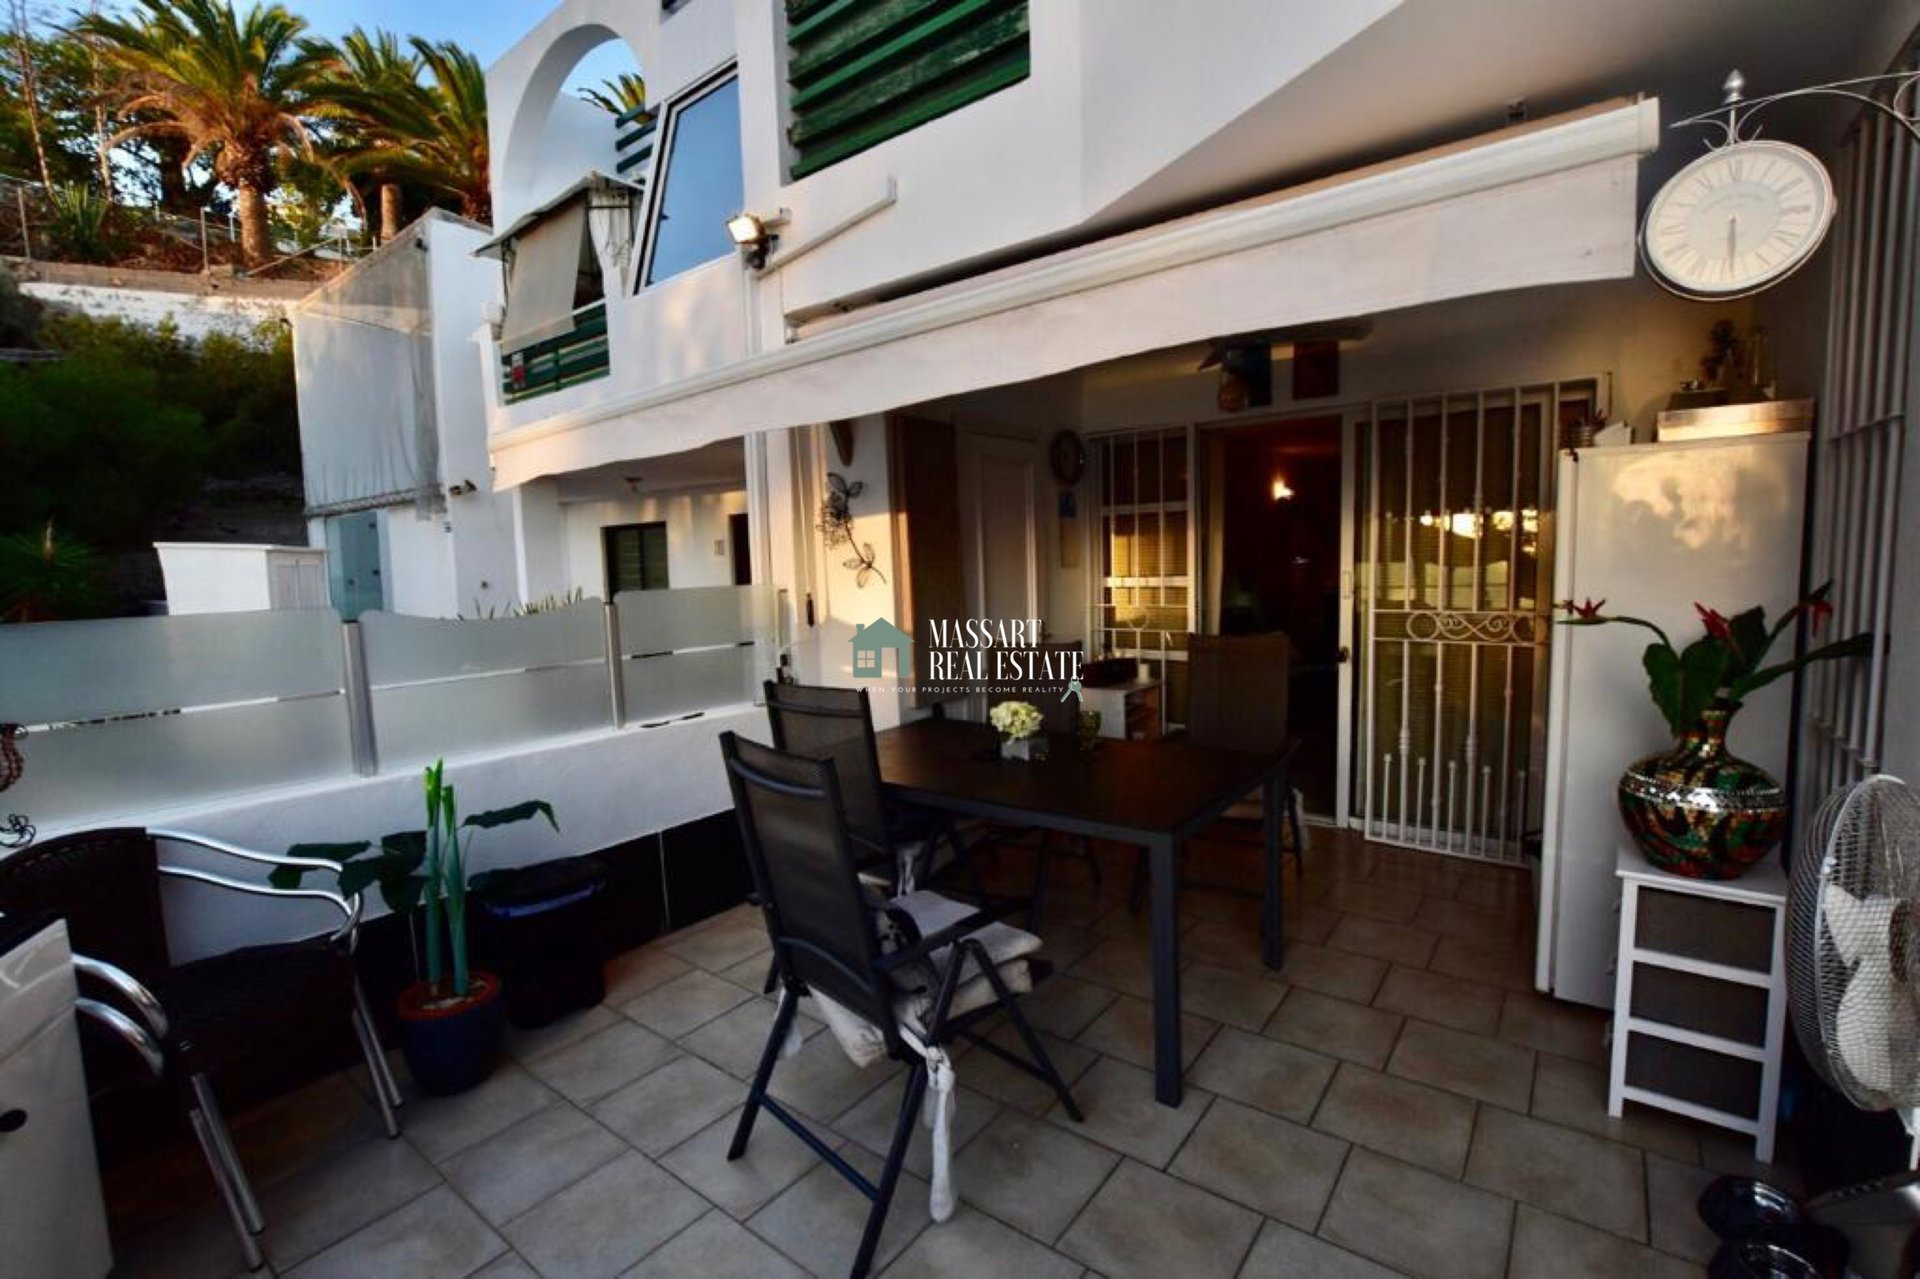 Recently renovated and fully furnished apartment located in San Eugenio Alto… with stunning views of the ocean and the island of La Gomera!